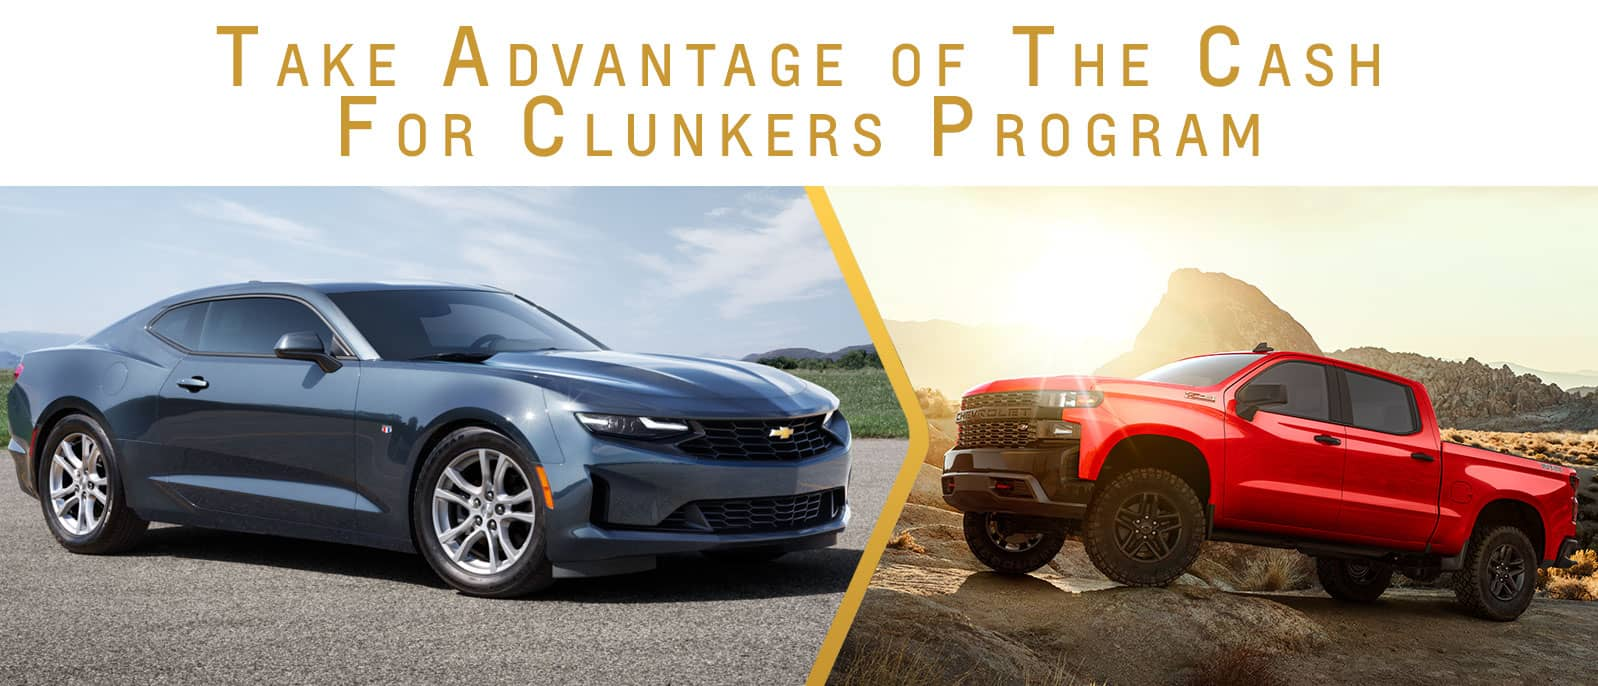 Bradley Chevrolet Cash For Clunkers